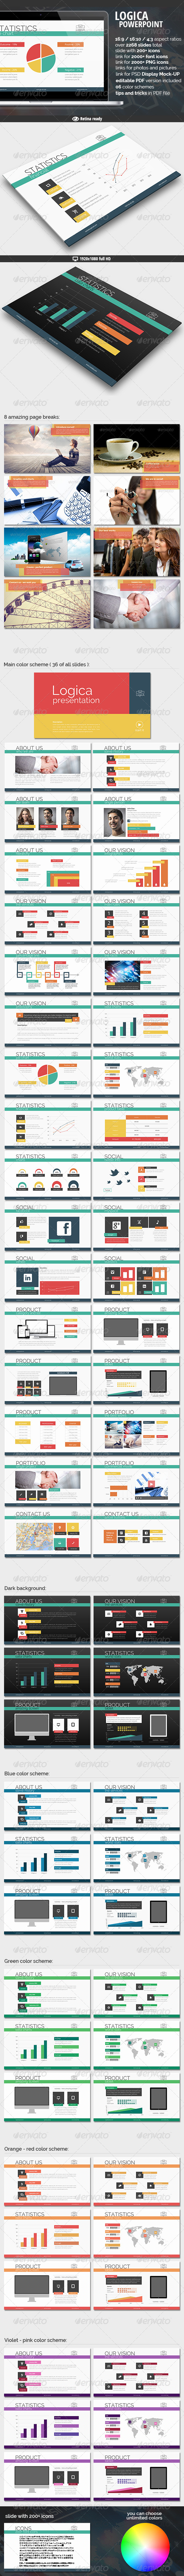 GraphicRiver Logica Powerpoint Presentation 7989224